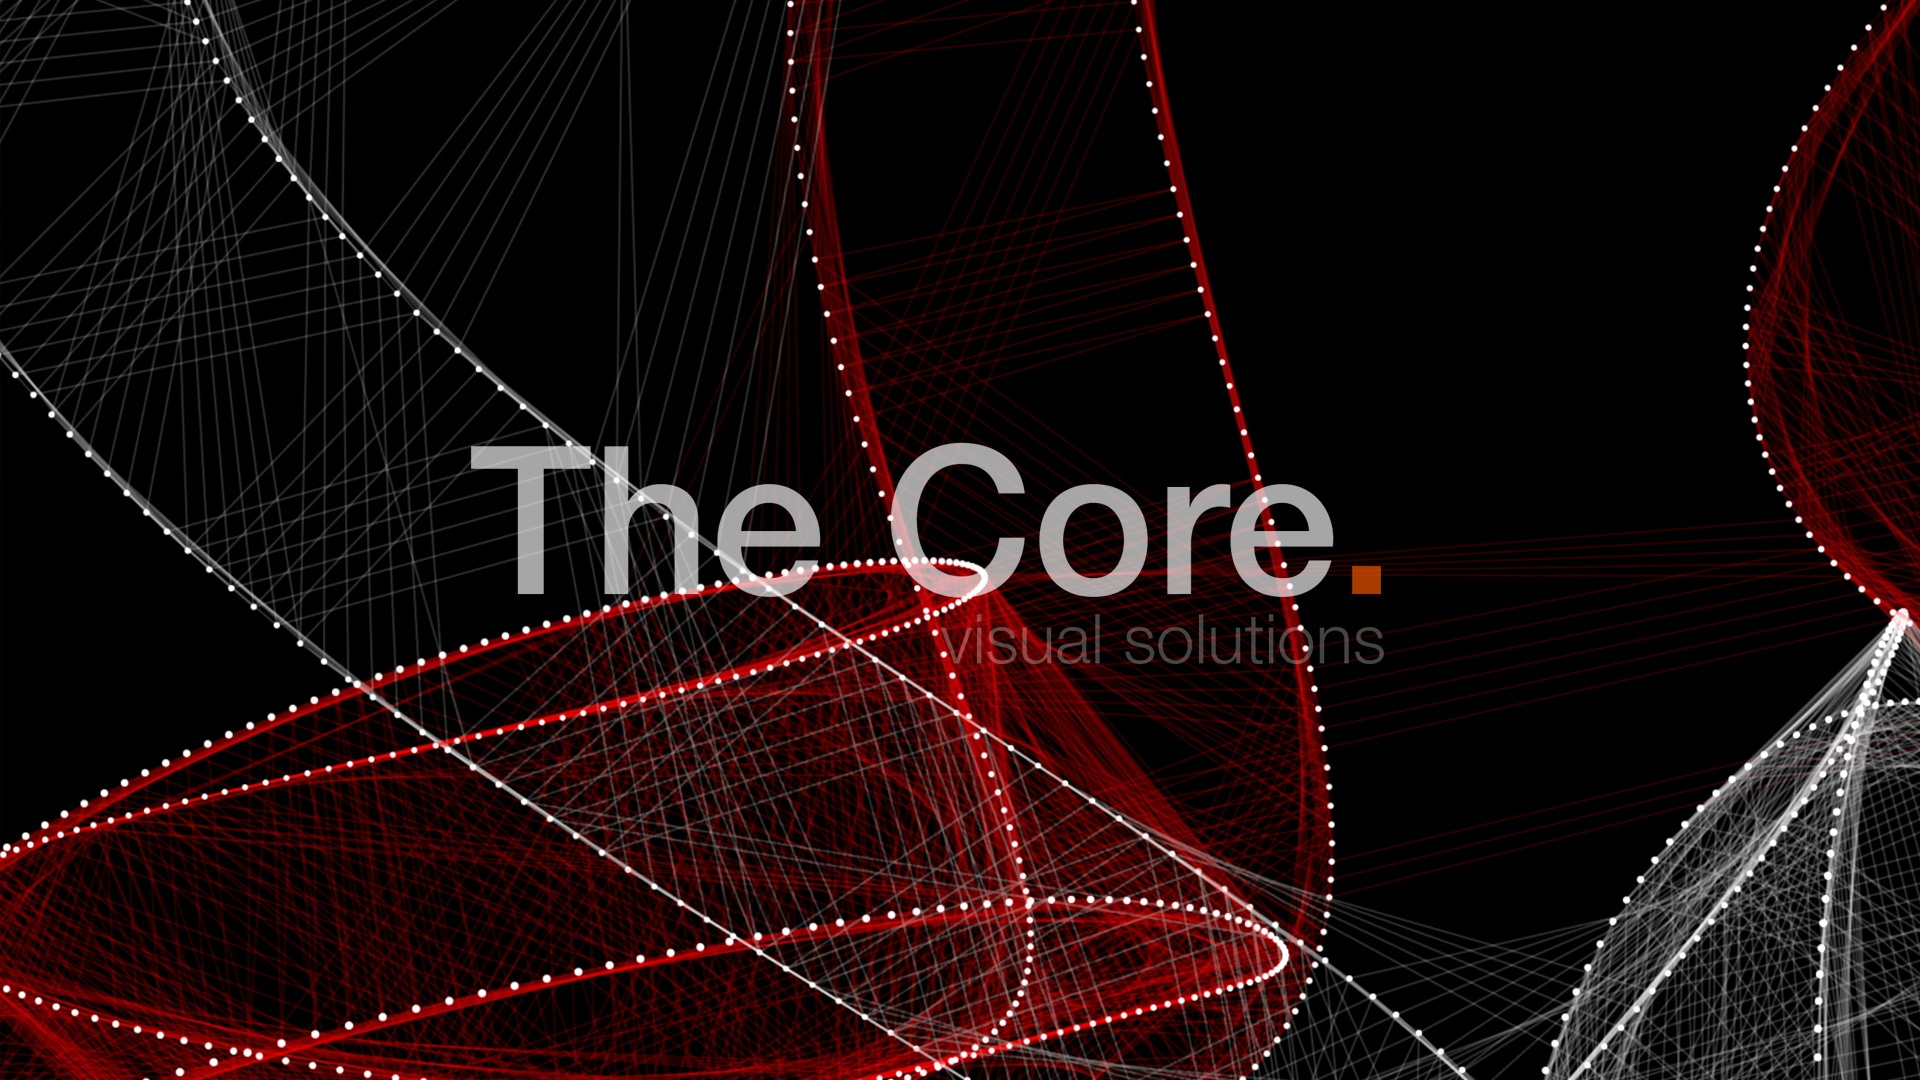 00162-LINES-WHITE-RED-CLOSEUP-1 30fps FullHD by The Core.